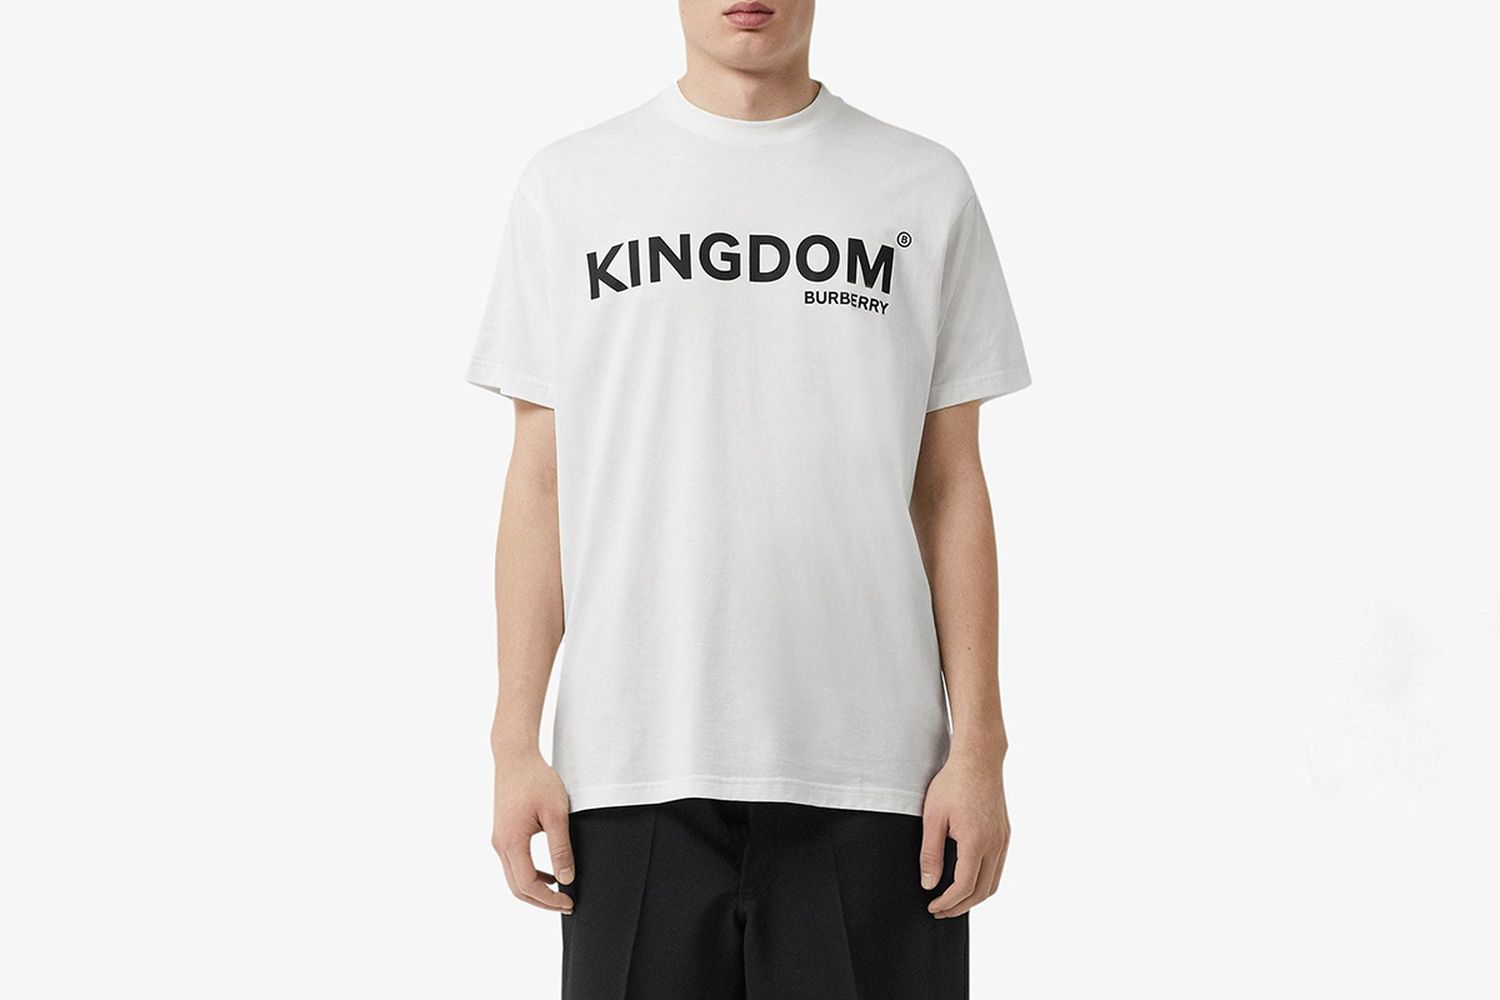 Kingdom Print Cotton T-shirt